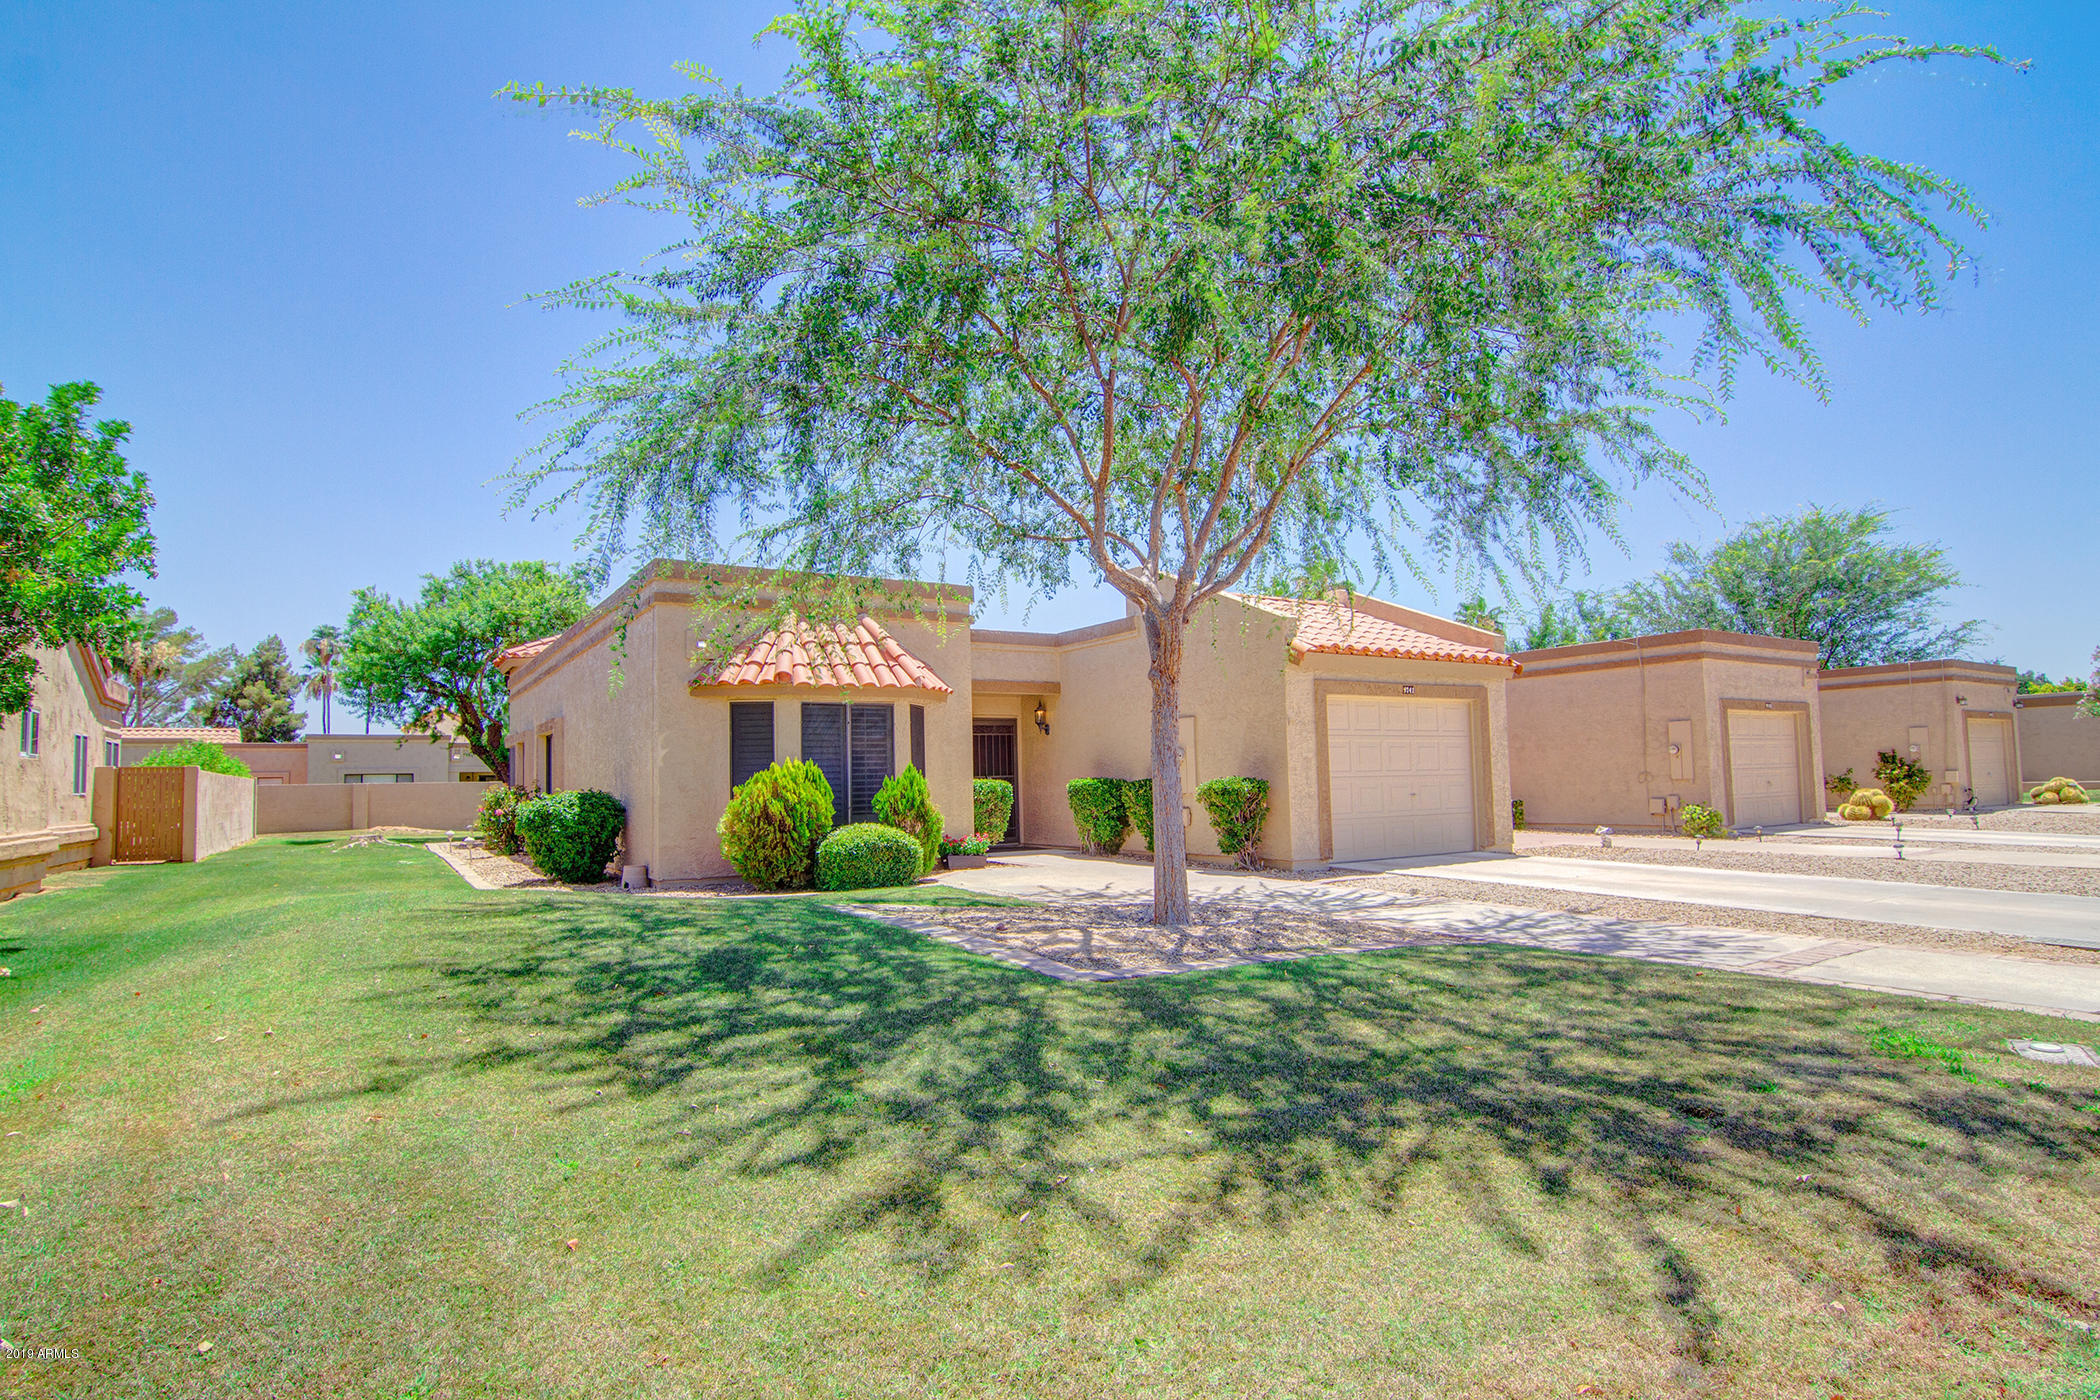 9741 W ROCKWOOD Drive, one of homes for sale in Peoria